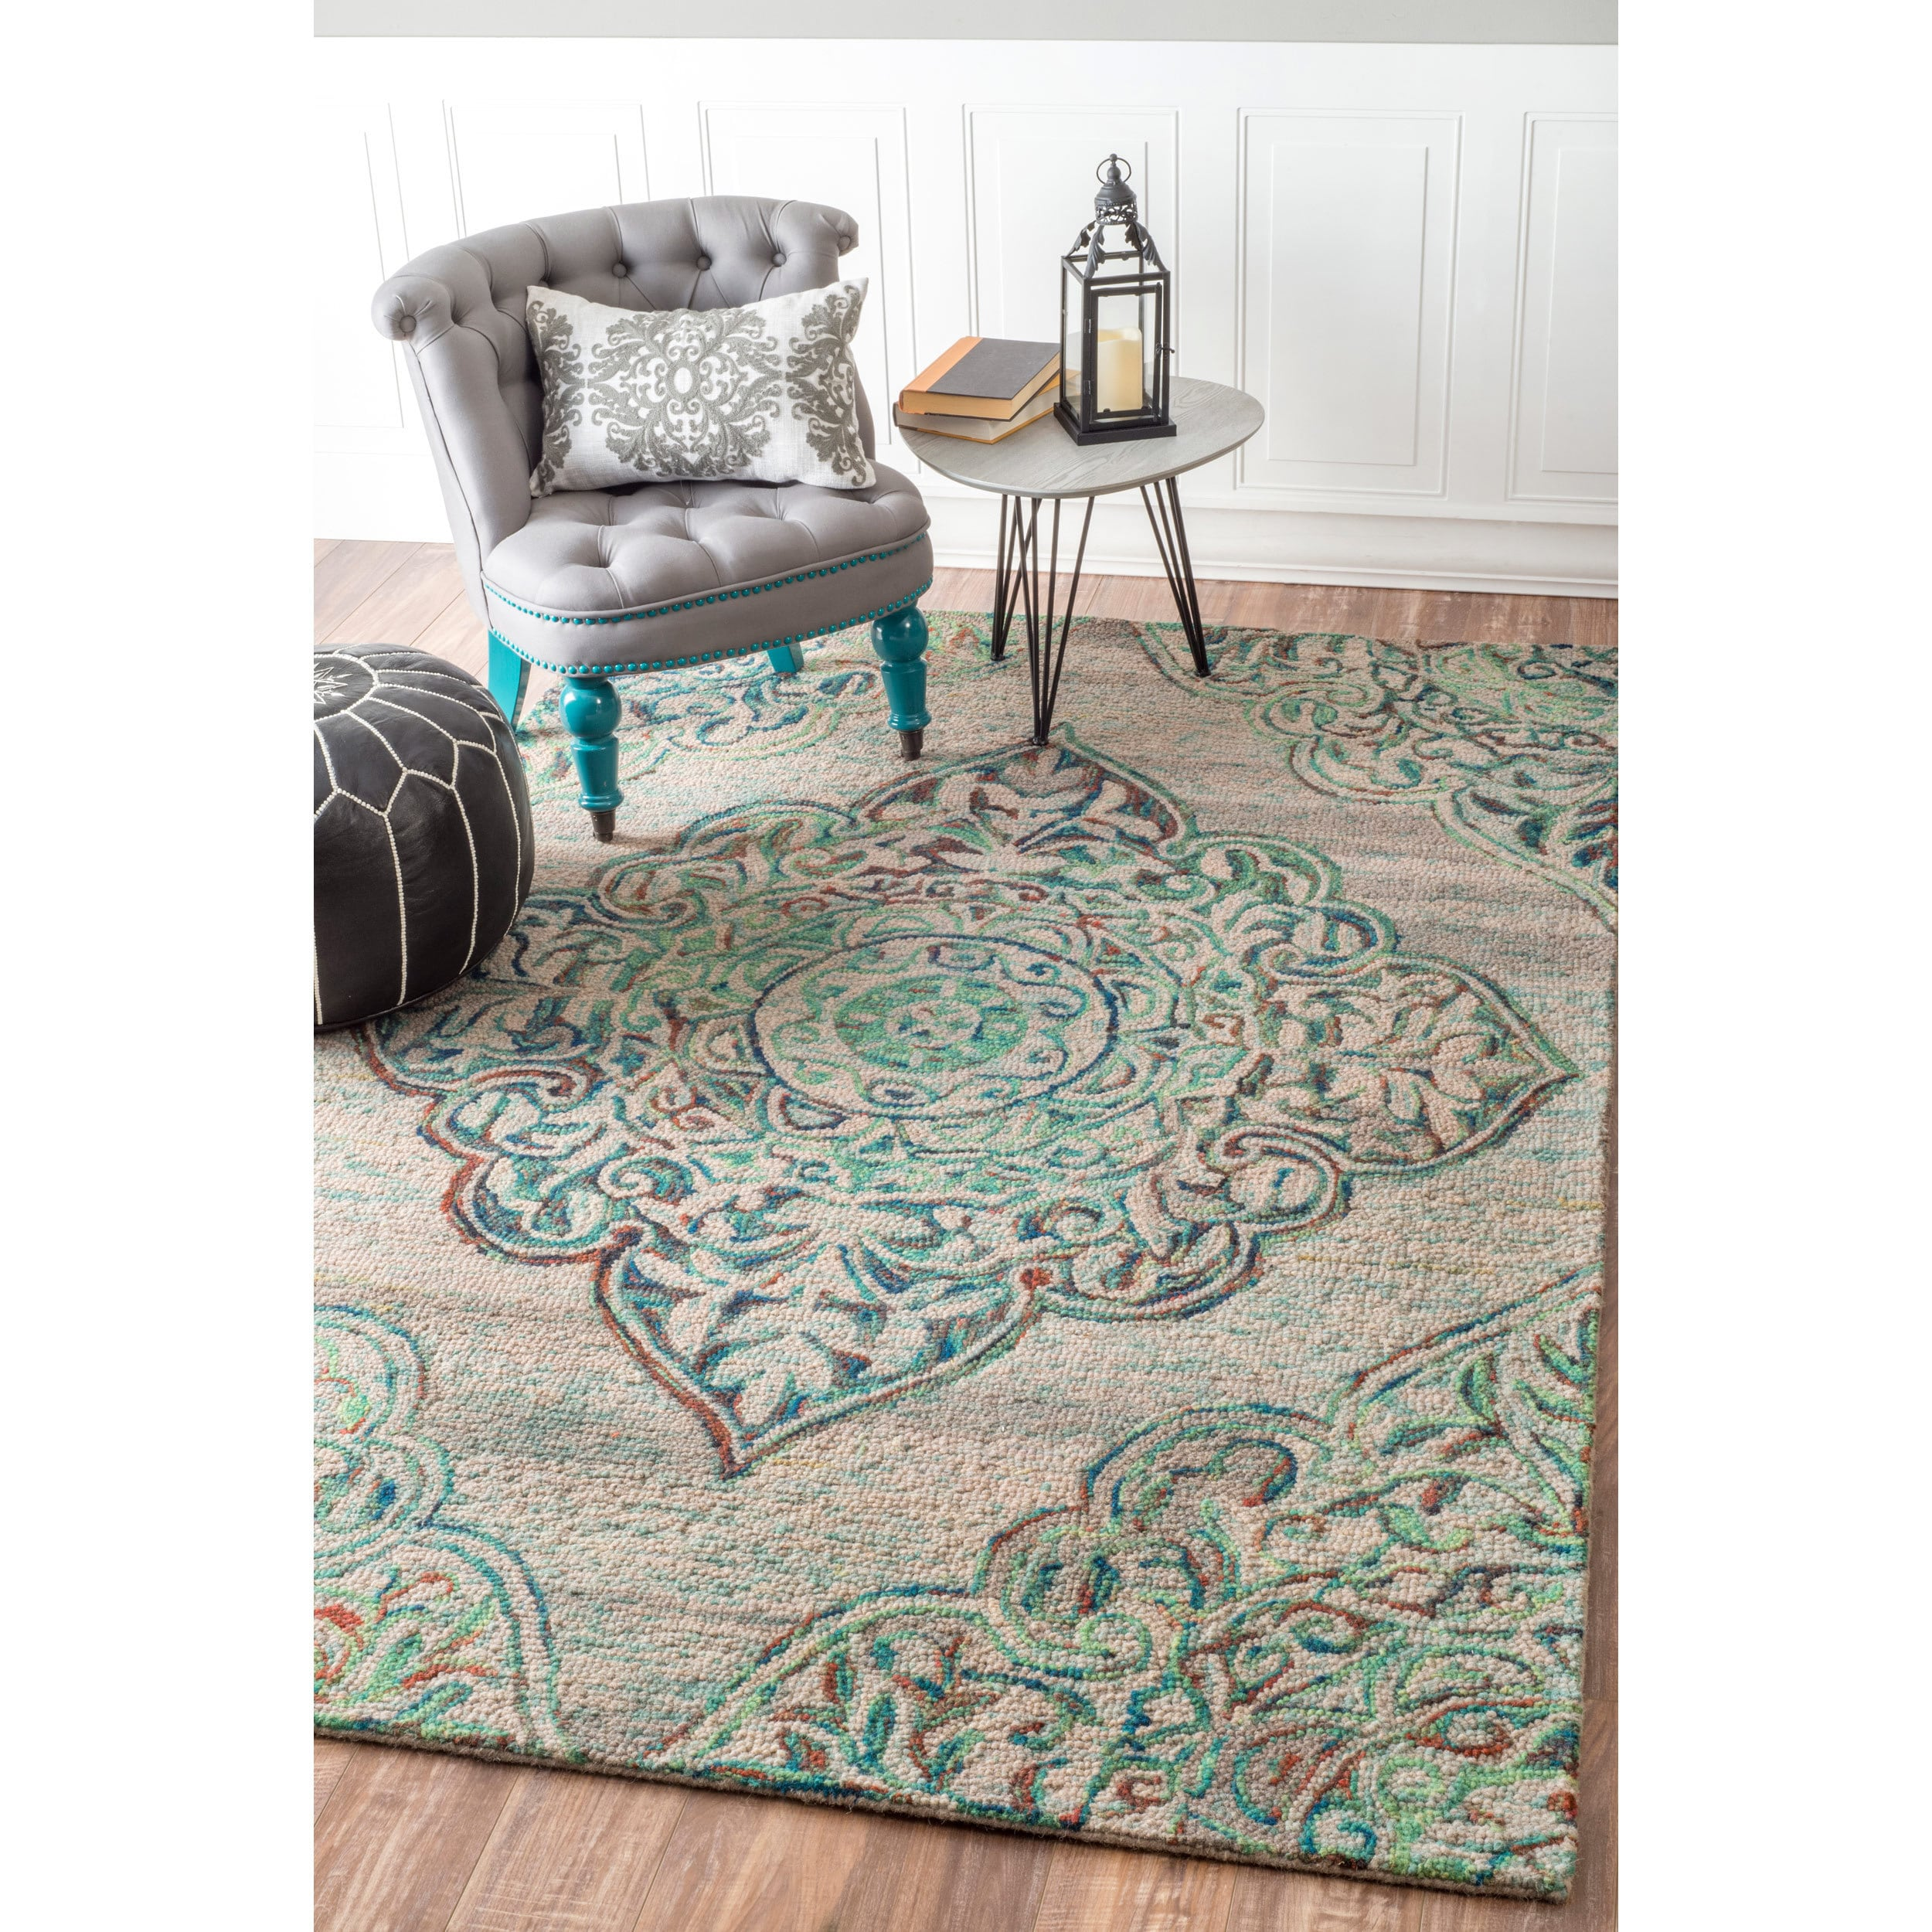 Shop Nuloom Handmade Country Floral Medallion Green Rug 5 X 8